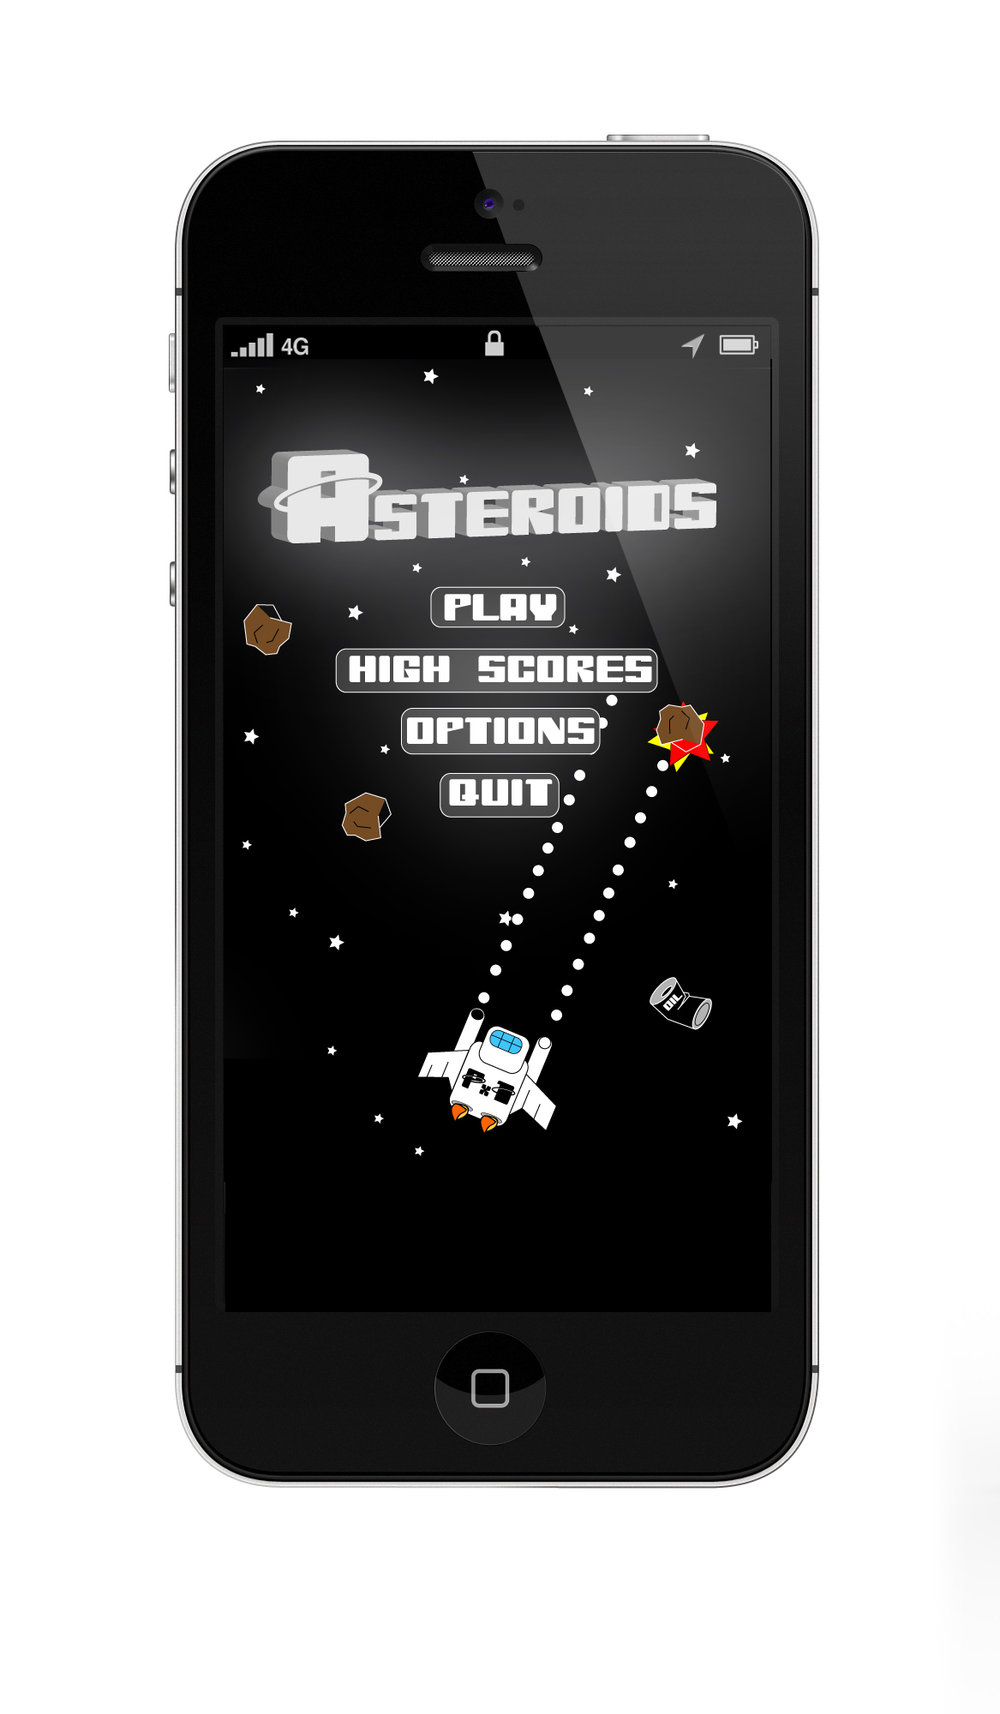 iphone5_ASTEROIDS.jpg